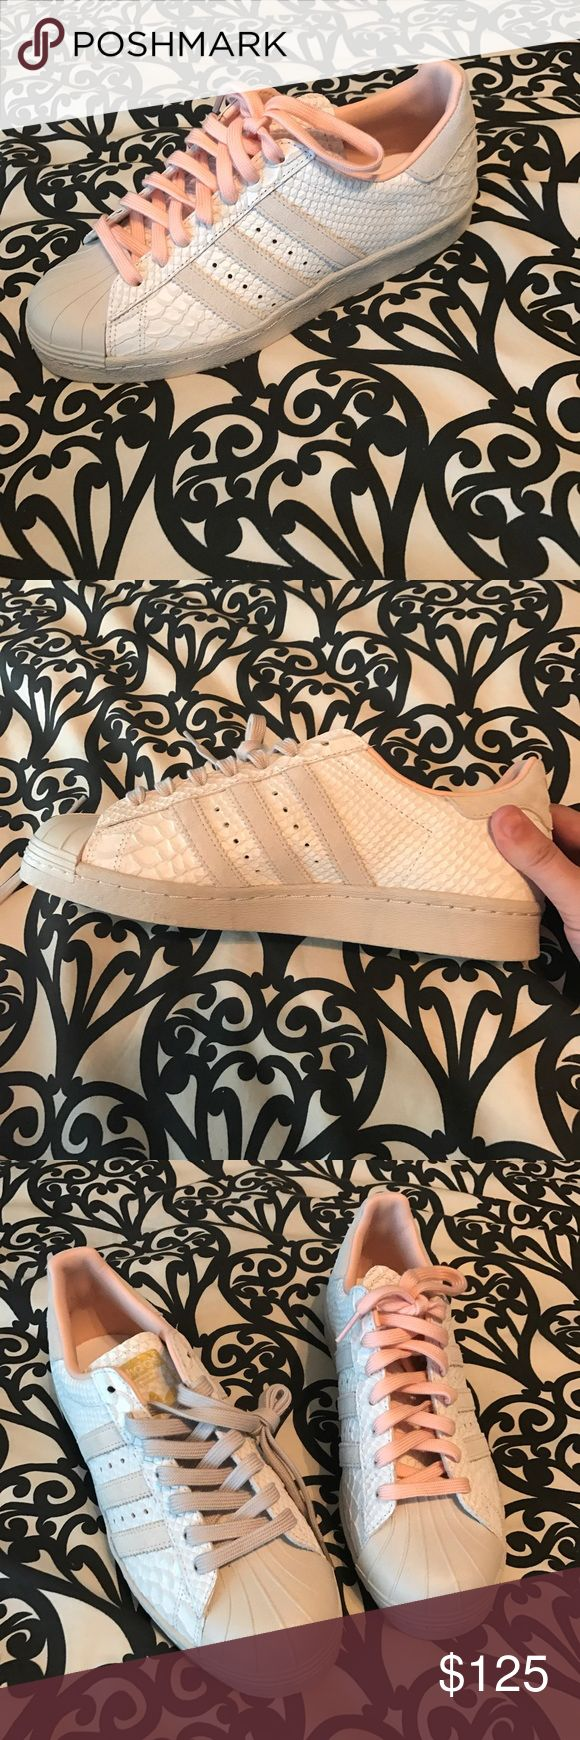 Adidas custom made shoes! Never worn! I made these online and they are too big for me! I love them tho! Two lace color options. Never worn. Adidas Shoes Sneakers